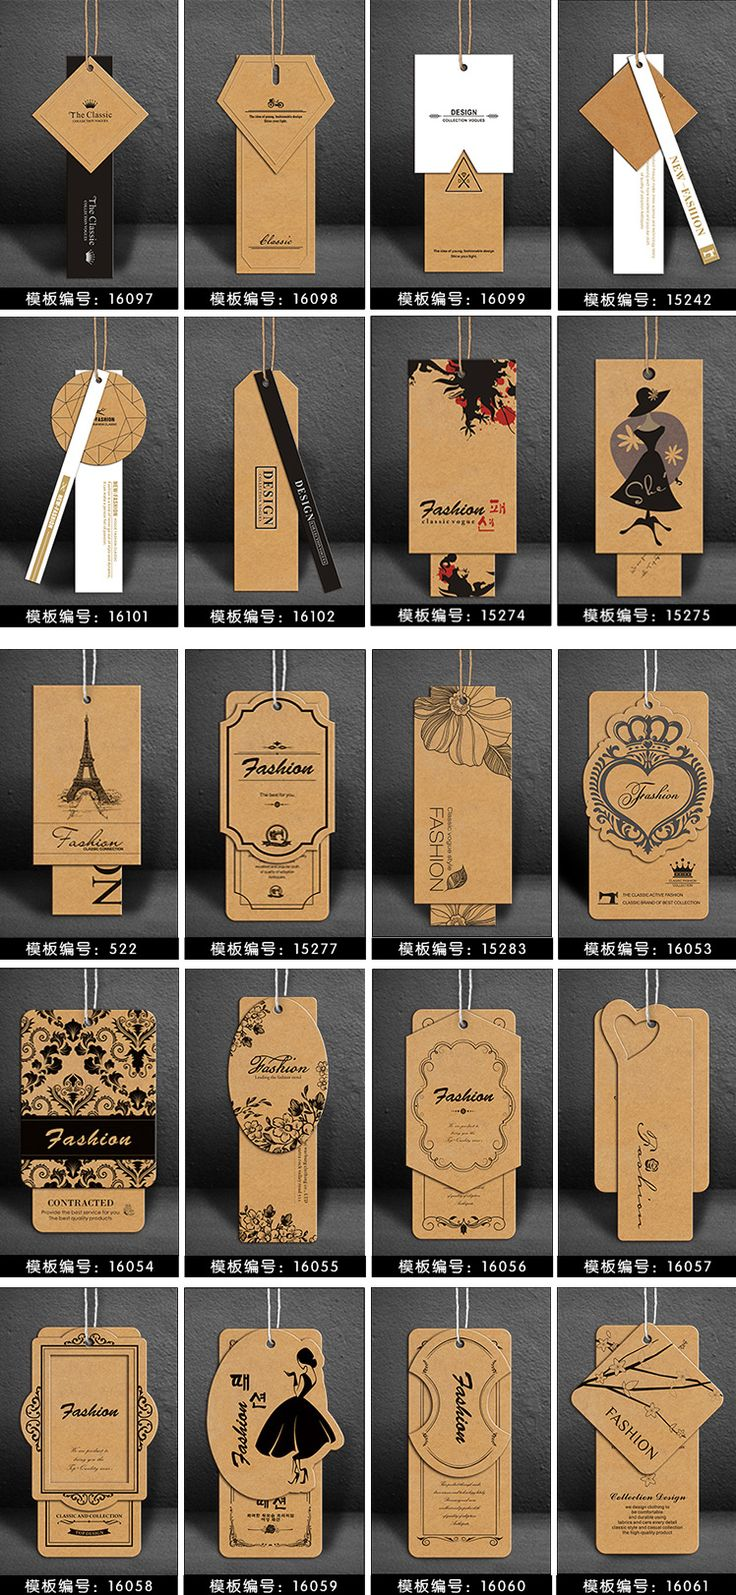 Clothing hang tags and paper bag manufacturers